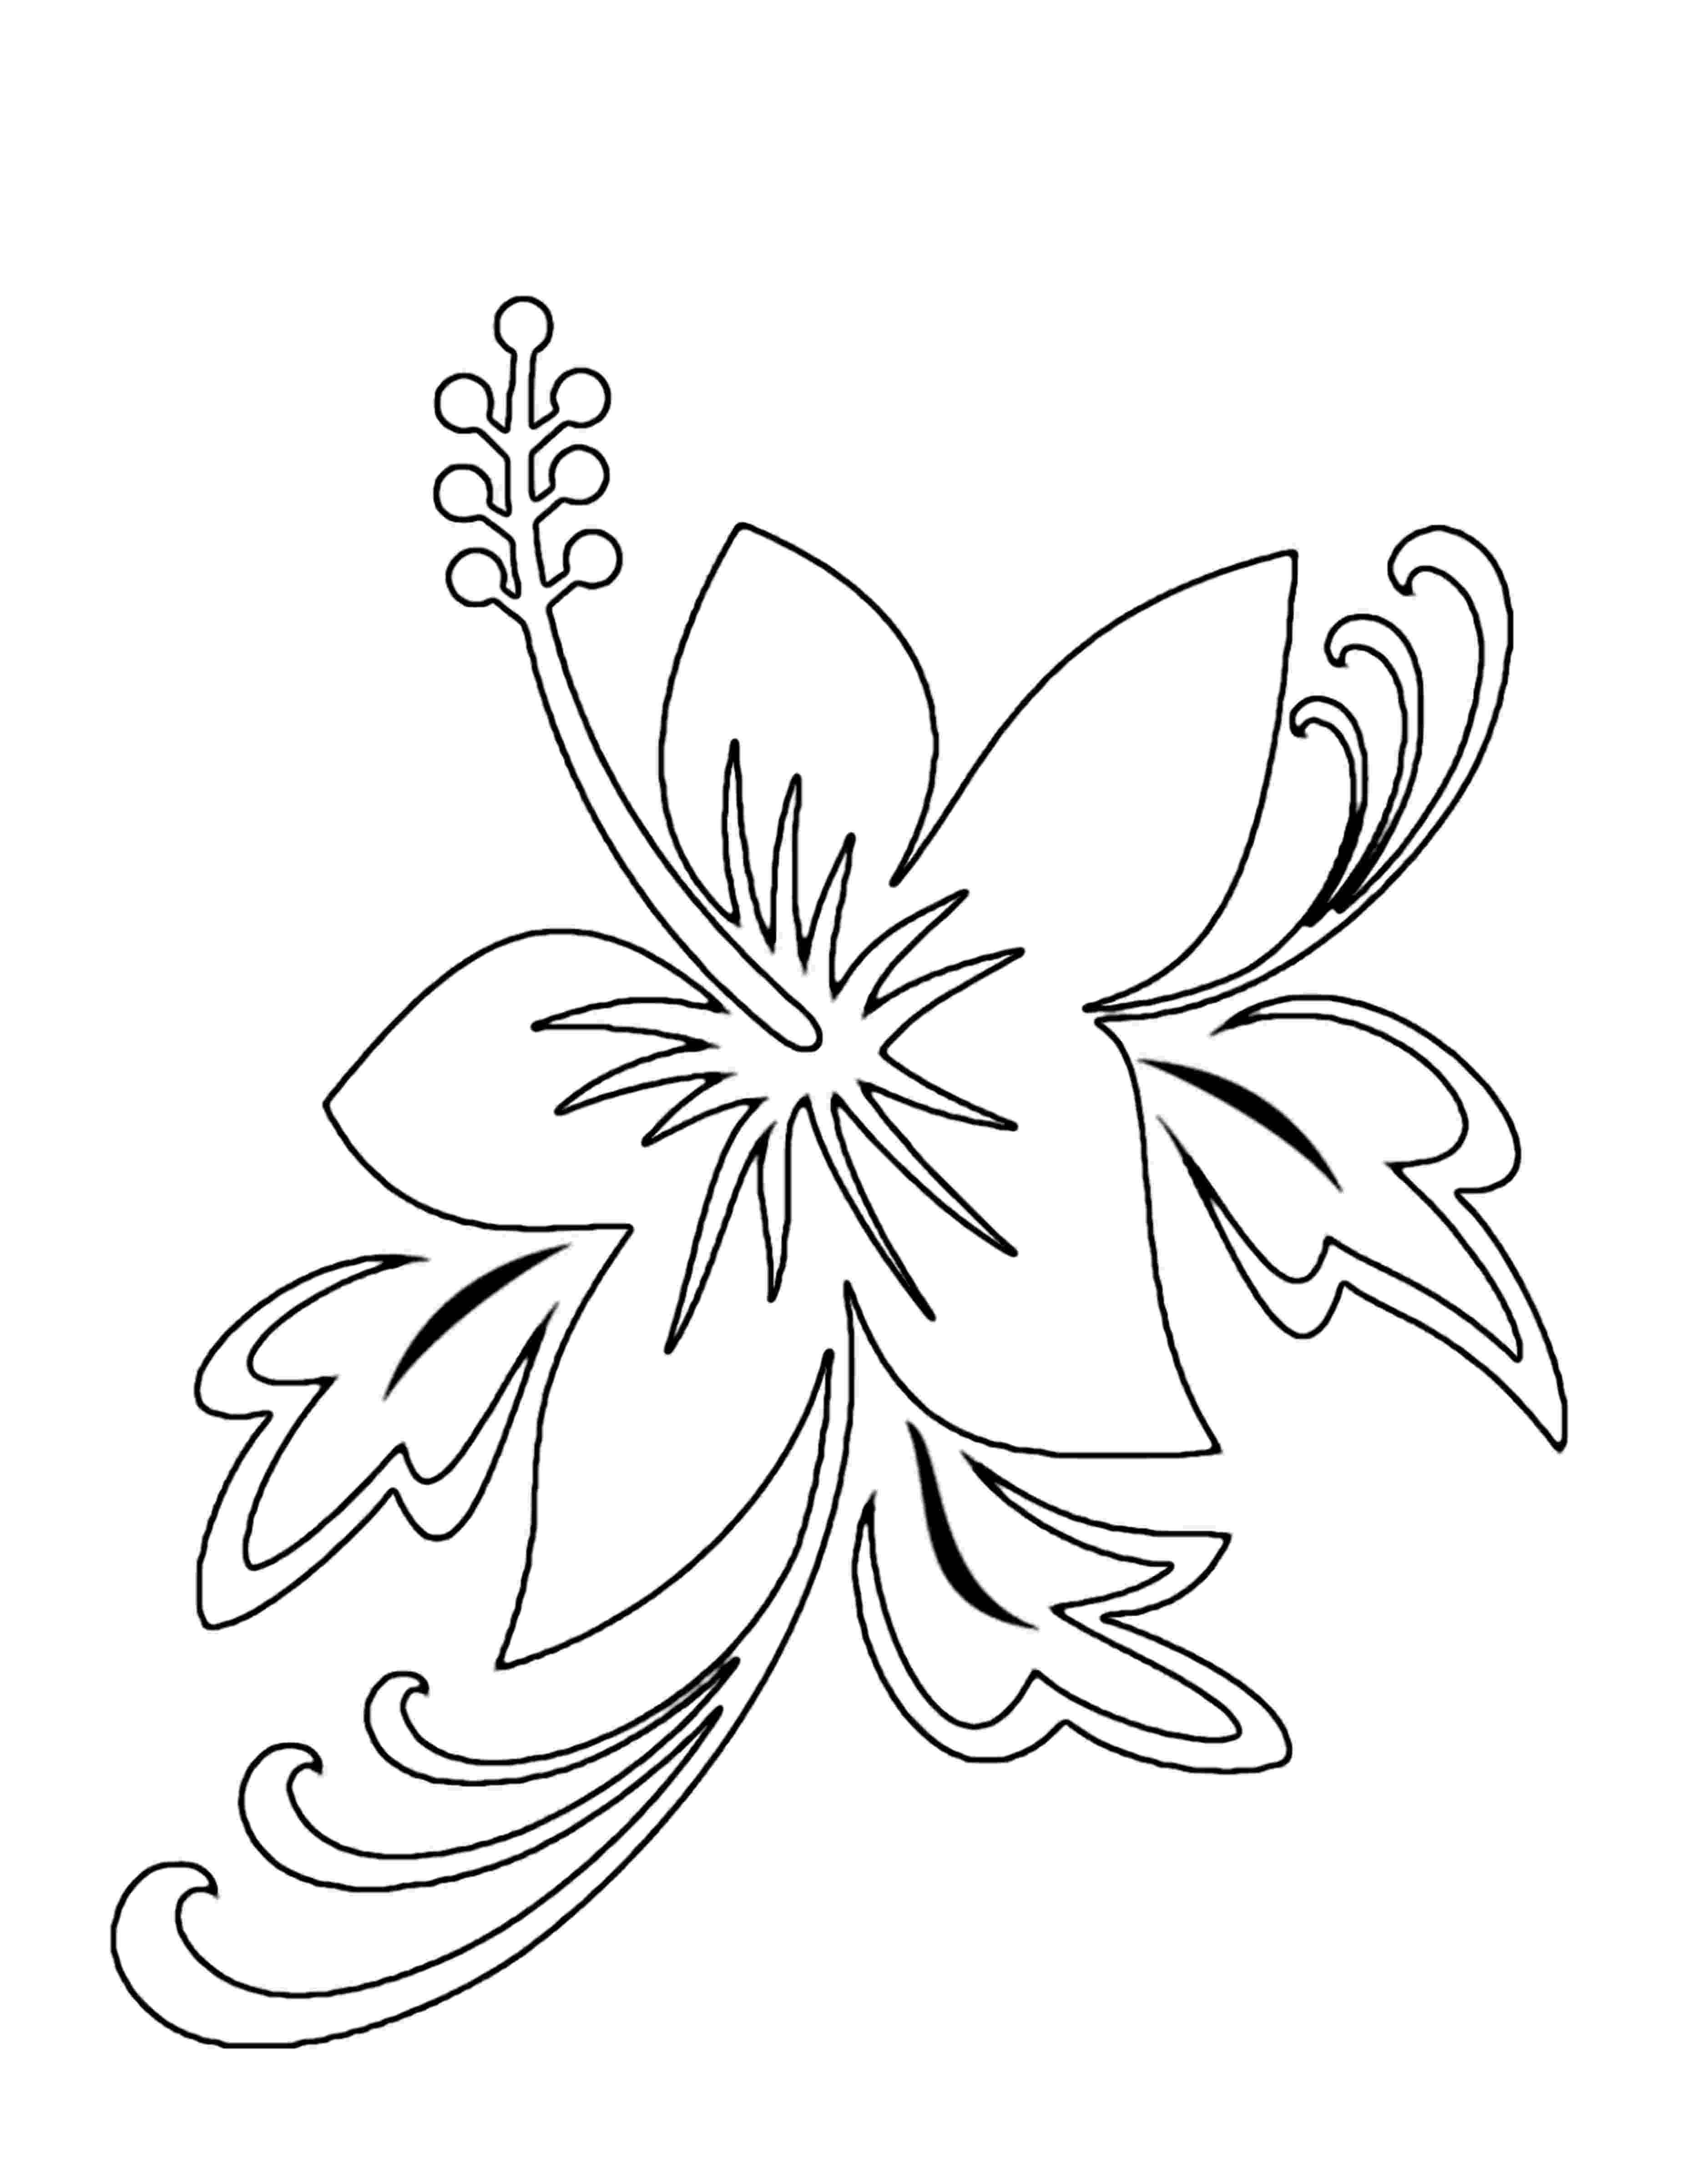 flower coloring books free printable flower coloring pages for kids best flower books coloring